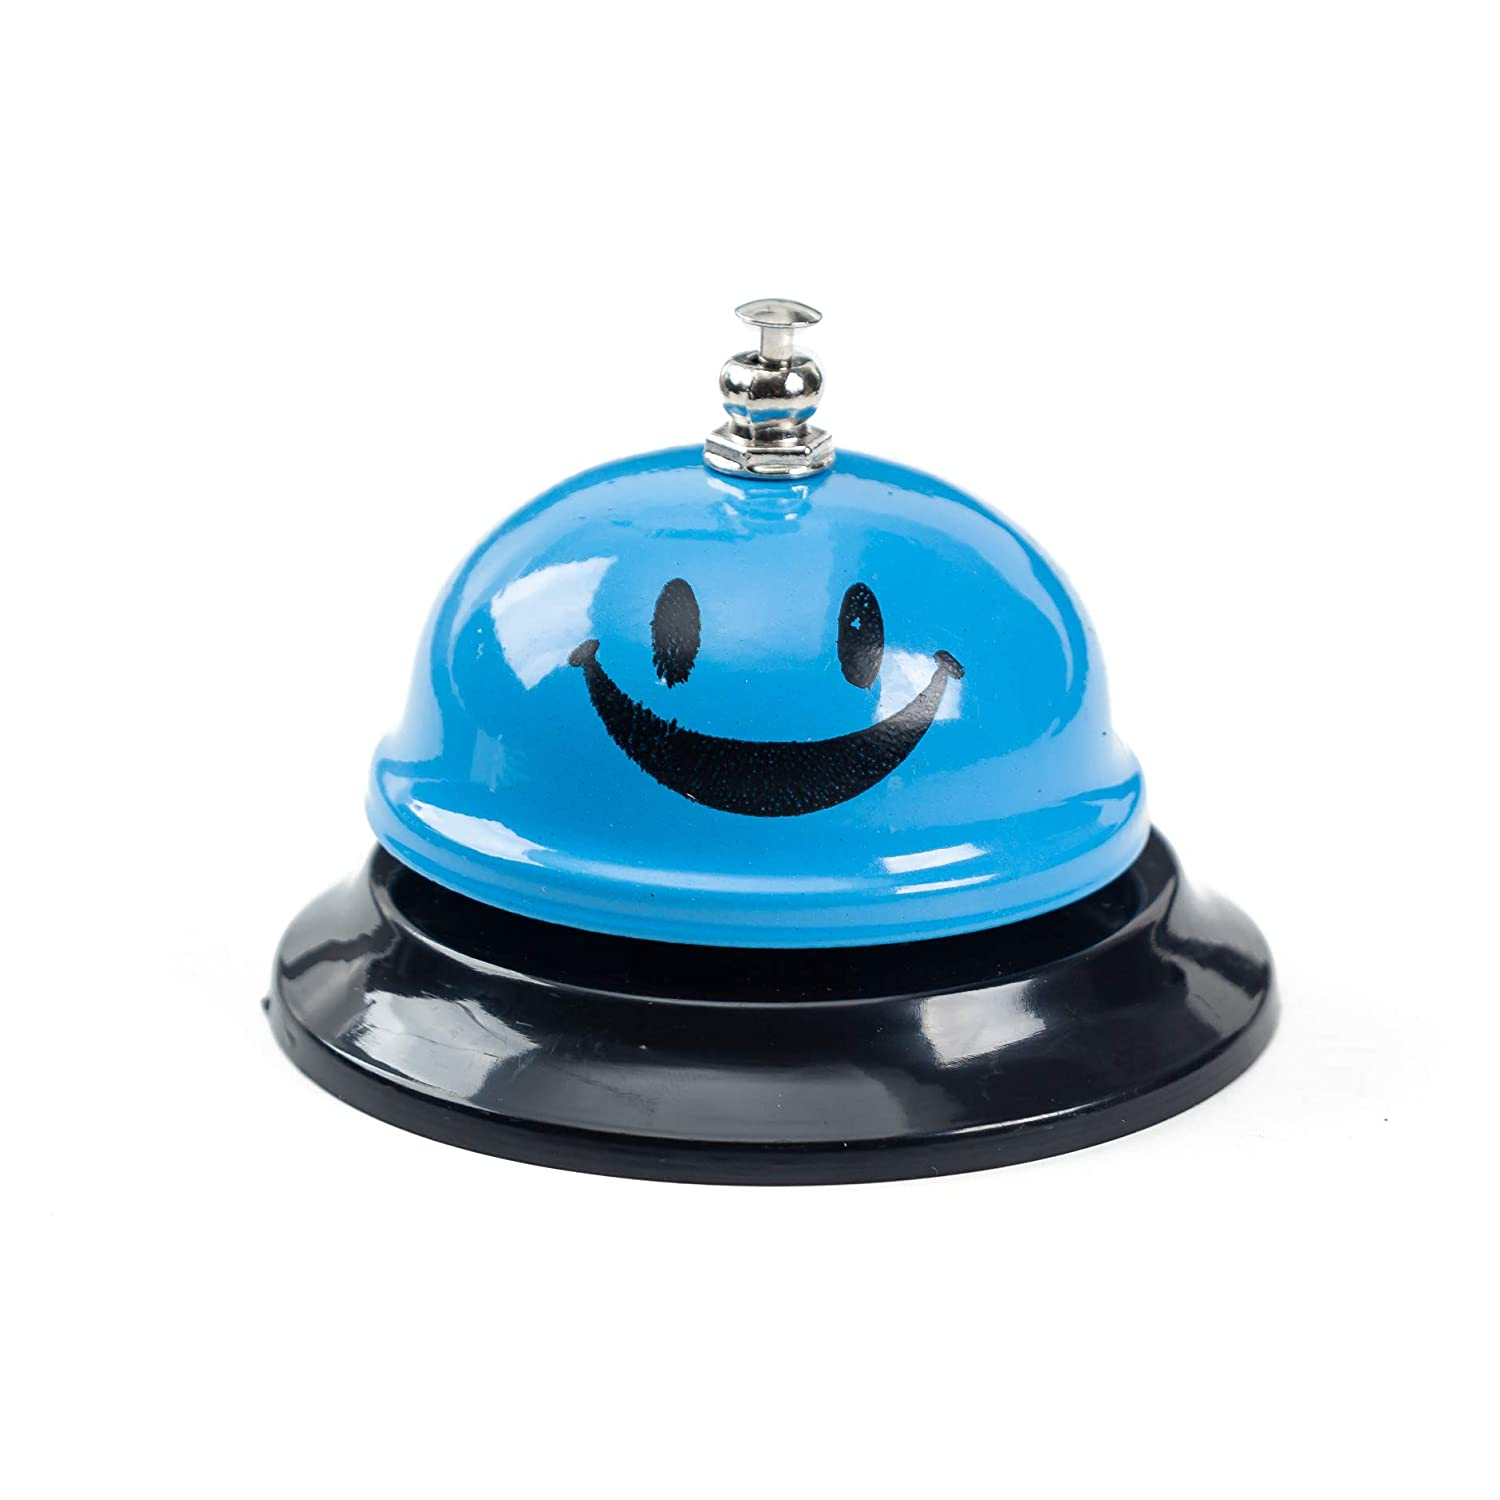 Metal Bell Reception Areas Schools Restaurants 1 Bell Blue Hospitals ASIAN HOME Call Bell 3.35 Inch Diameter Blue Smiley Face Desk Bell Service Bell for Hotels Customer Service